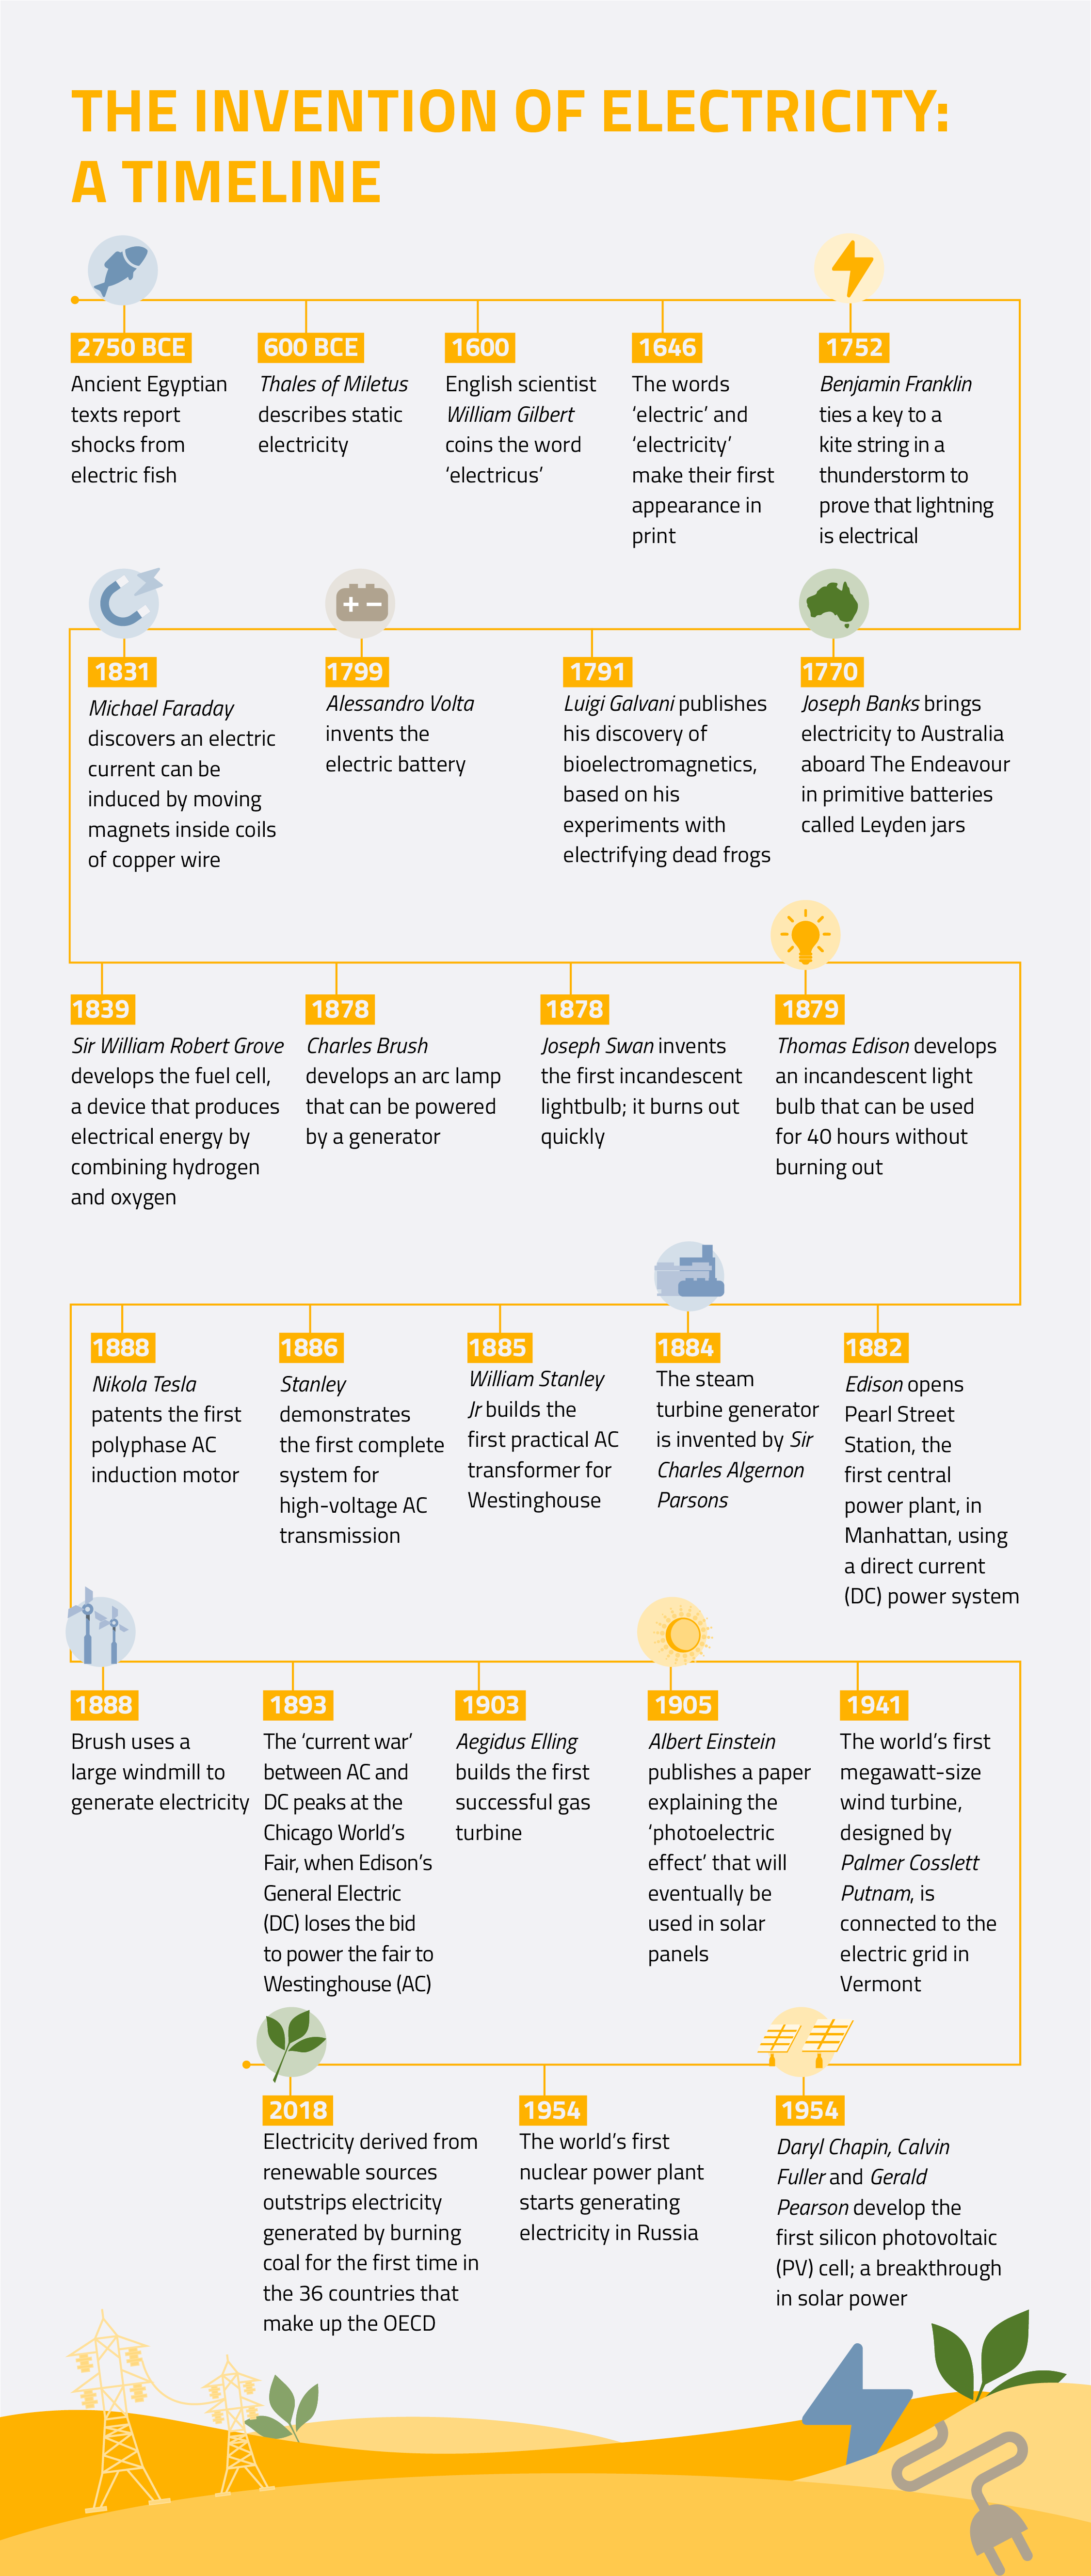 The story of electricity - a timeline